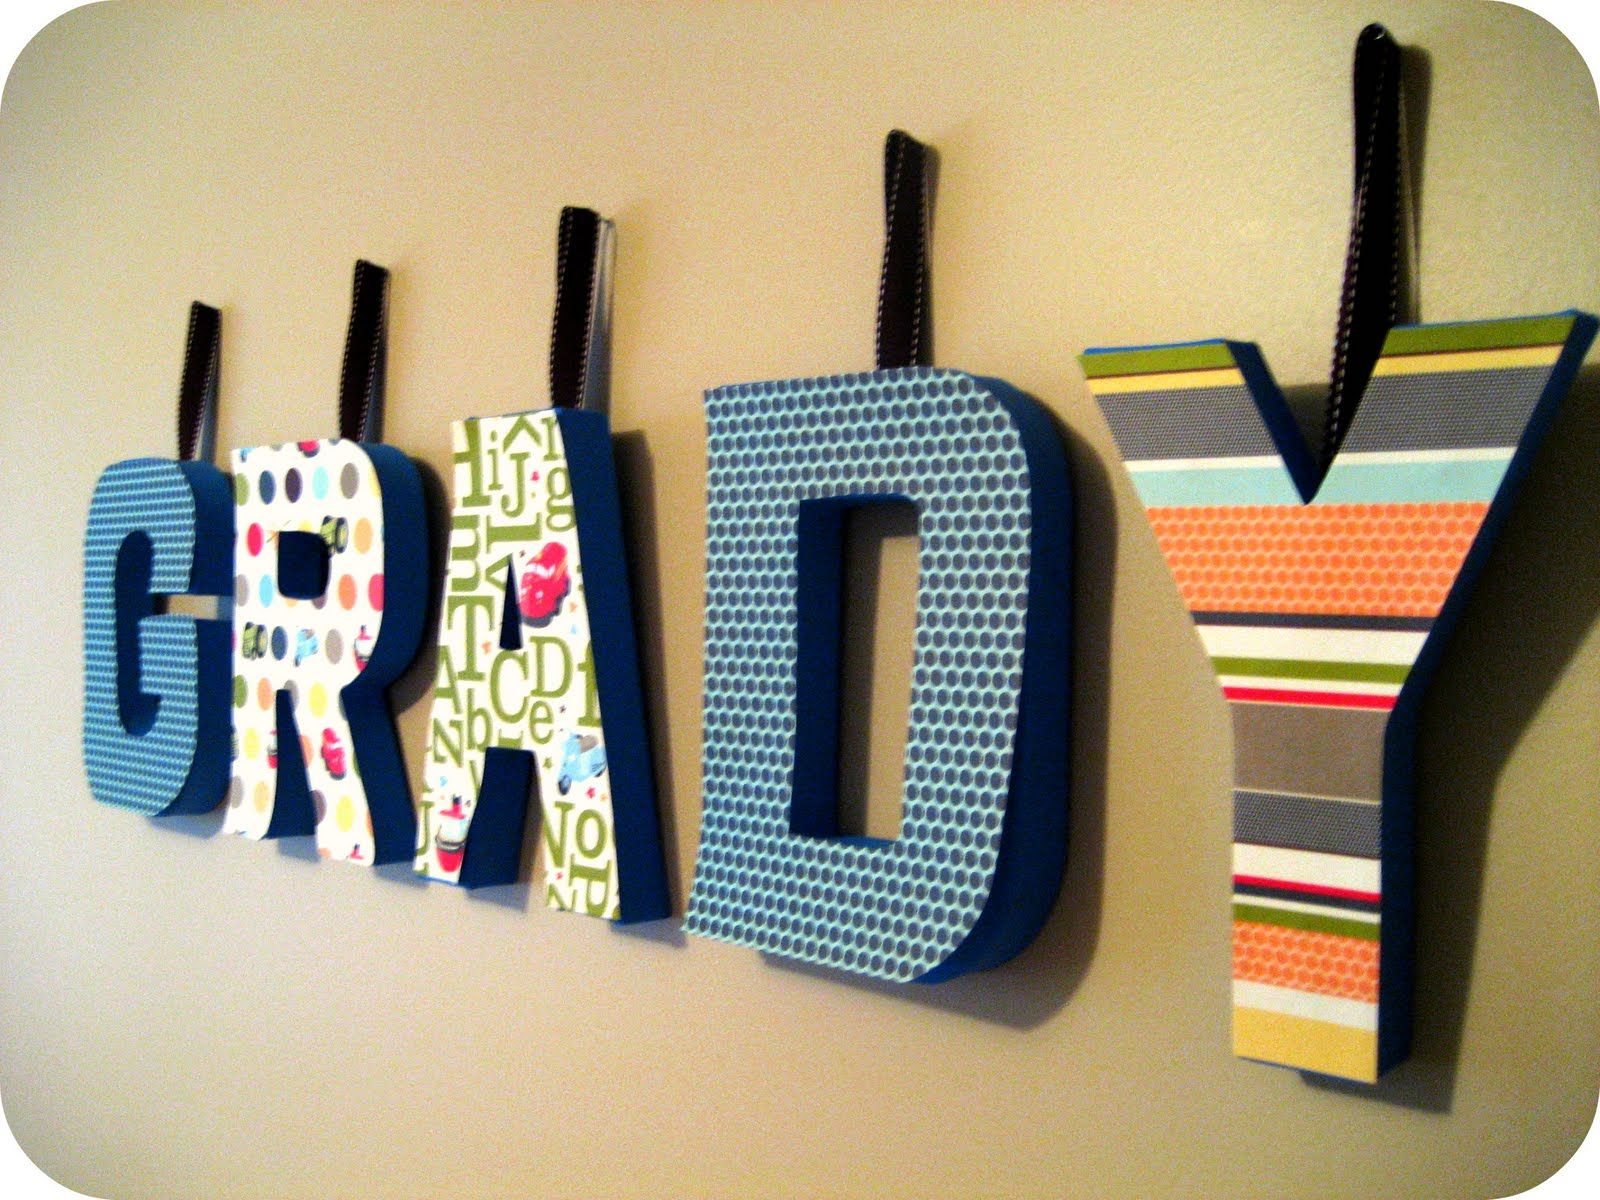 How to glue scrapbook paper to wood letters - Cover Wooden Letters With Scrapbook Paper And Modpodge Glue Attach Ribbons For Hangers And Have Unique Wall Art For Kids Room